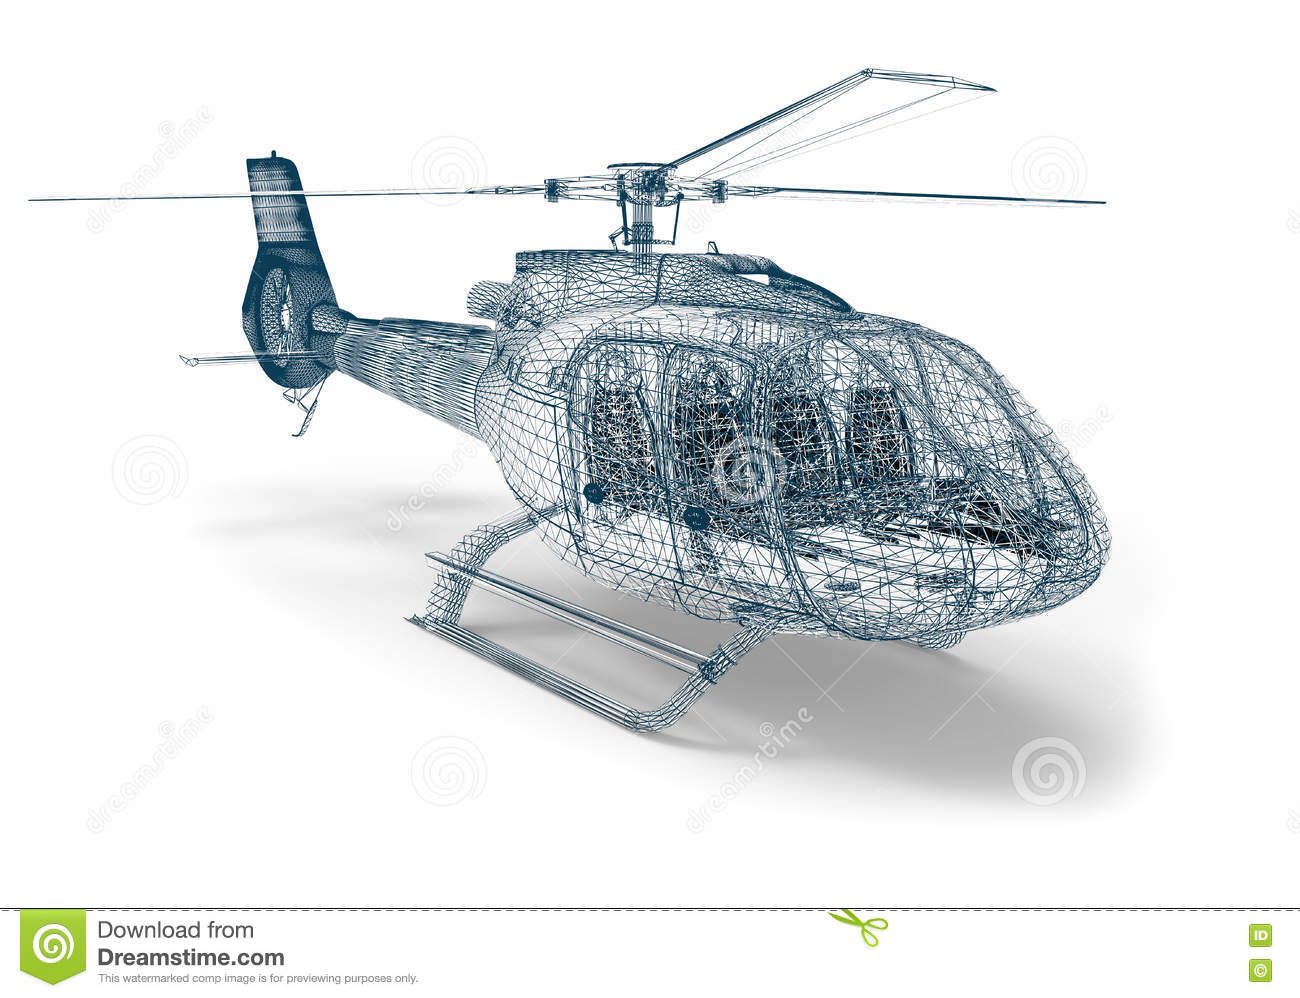 helicopter seats 8 with Stock Illustration Aircraft  Puter Aided Design D Render Image Helicopter Wire Frame Representing Image76273429 on Stock Photo Santa Claus Flying Airplane Presents Cartoon Illustration Jolly Character Waving Words Ho Ho Ho Image56946478 besides Pictures Bell Targets Military Market With 525 Heli 440587 further Editorial Stock Photo Inside Chinook Helicopter Particular Aboard Midway Seacarrier Image53204438 besides 362069357182 together with Multibody Dynamics.